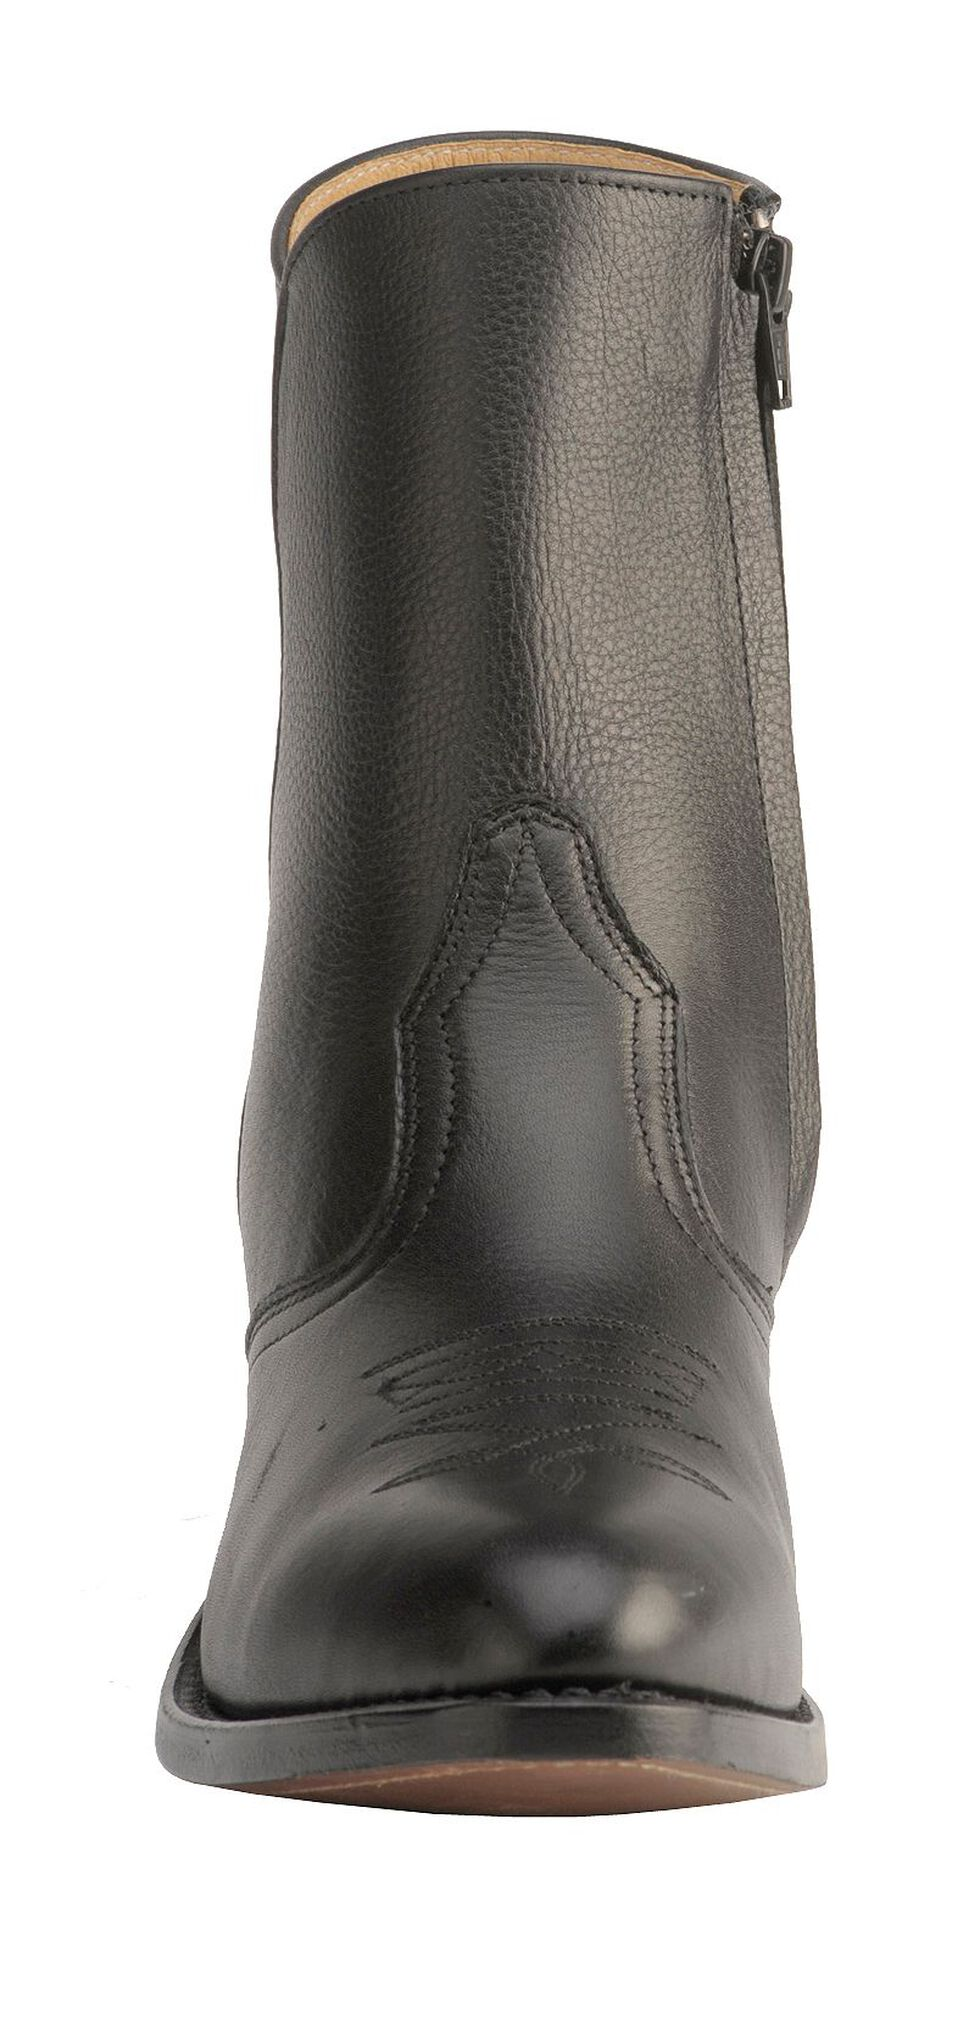 "Boulet Men's 7"" Western Zipper Boots - Medium Toe, Black, hi-res"